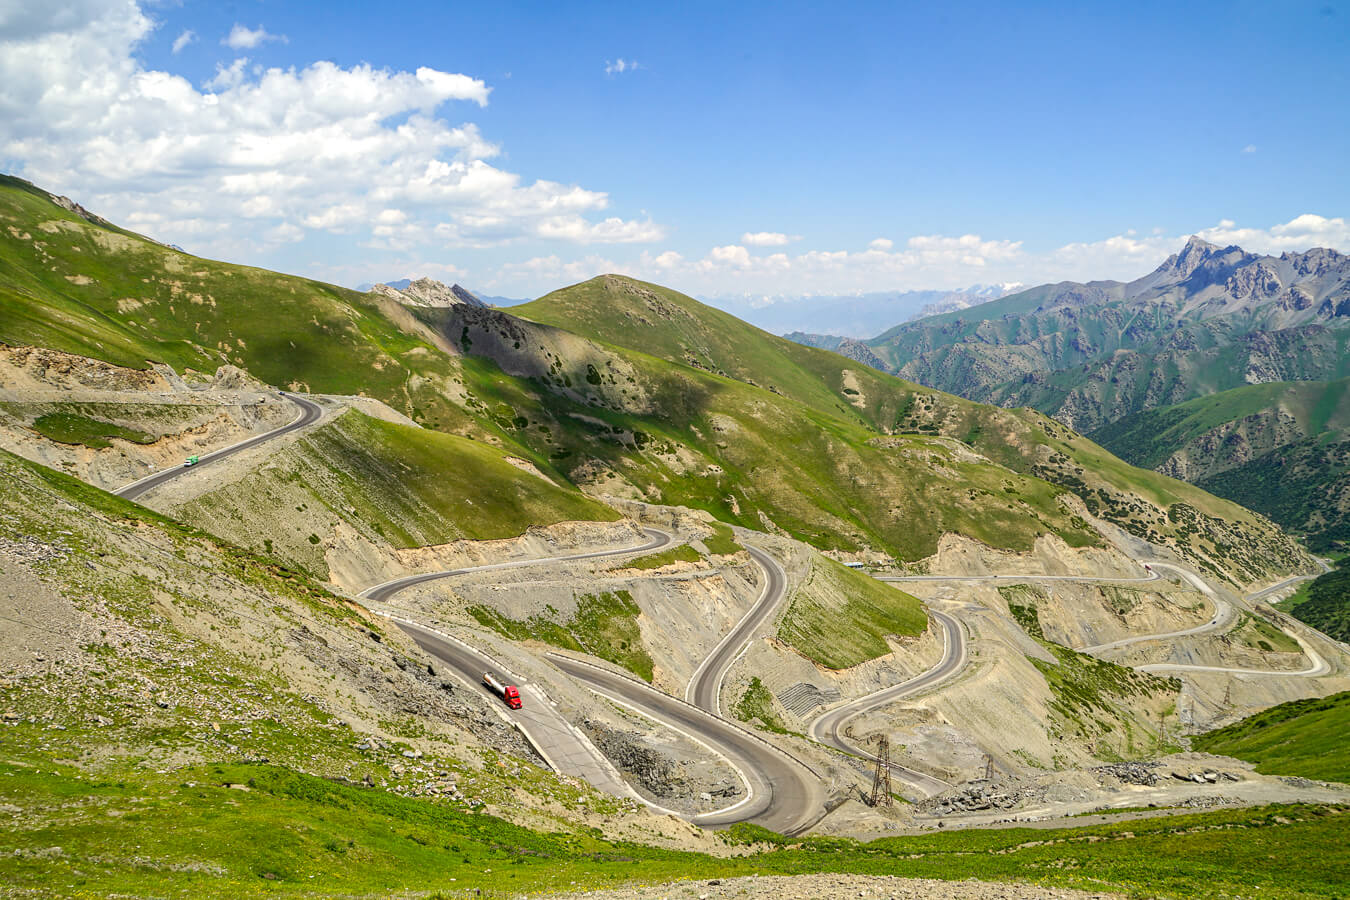 Taldyk Pass with serpantine road in southern Kyrgyzstan